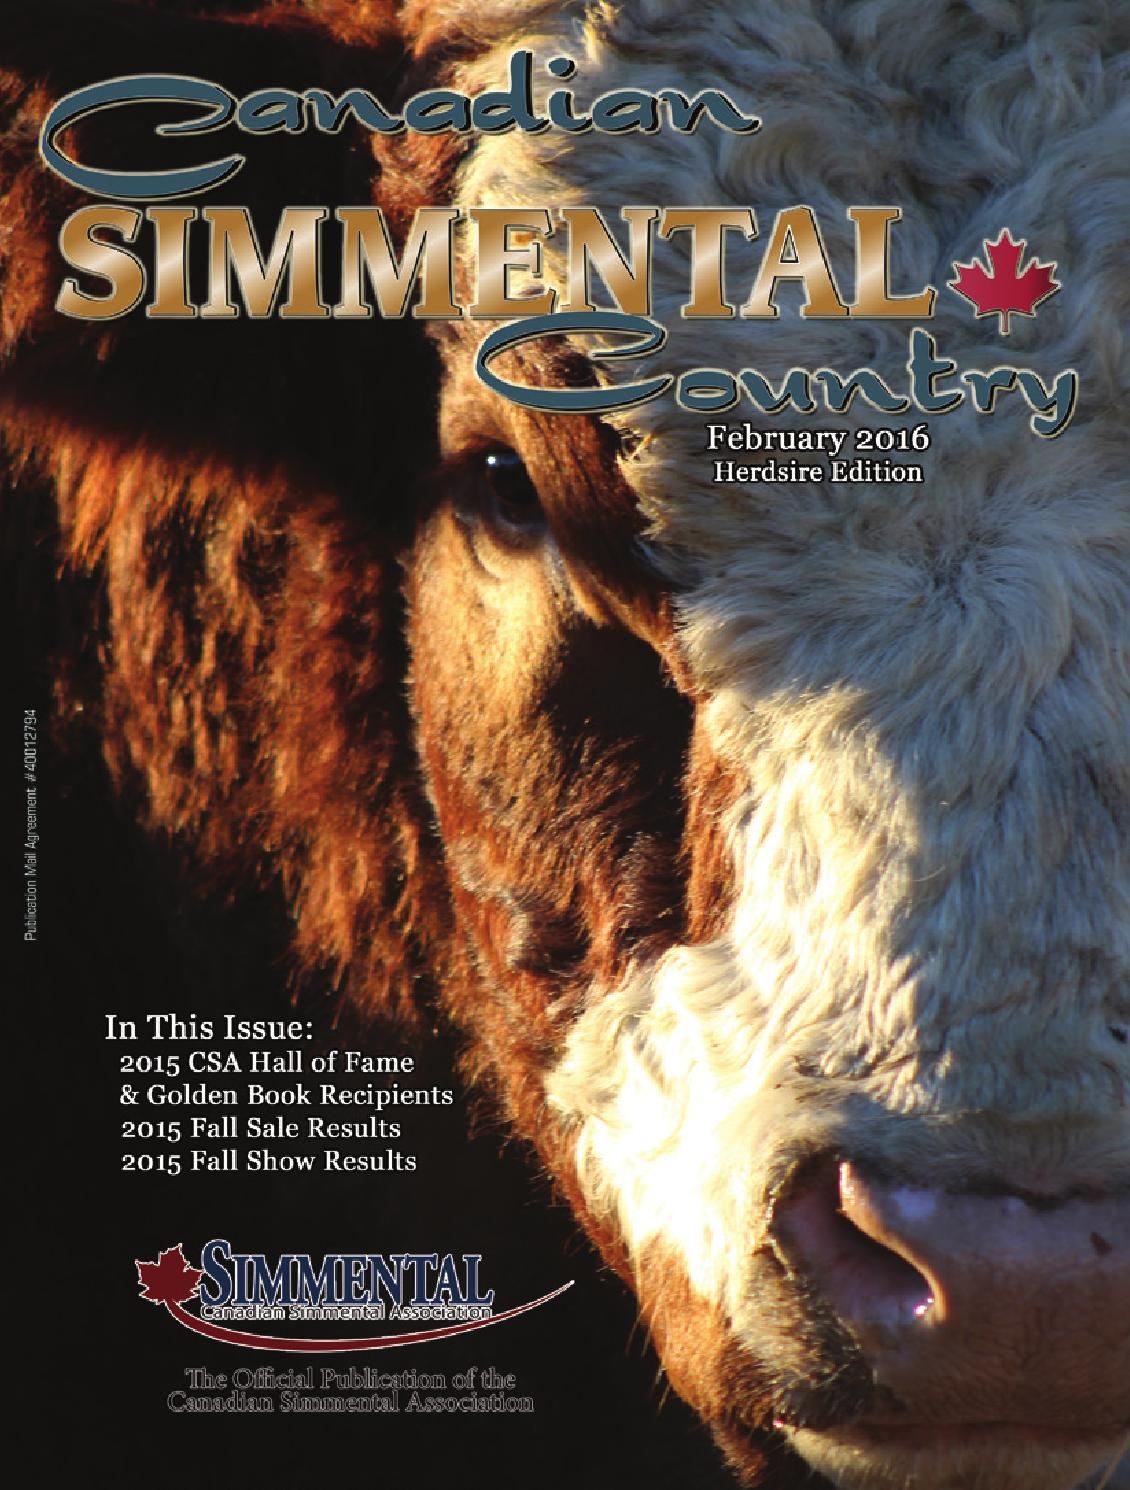 Canadian Simmental Country By Todays Publishing Inc Issuu Sell Replacement Part Of Pellet Stove Circuit Board Ningbo Hitech